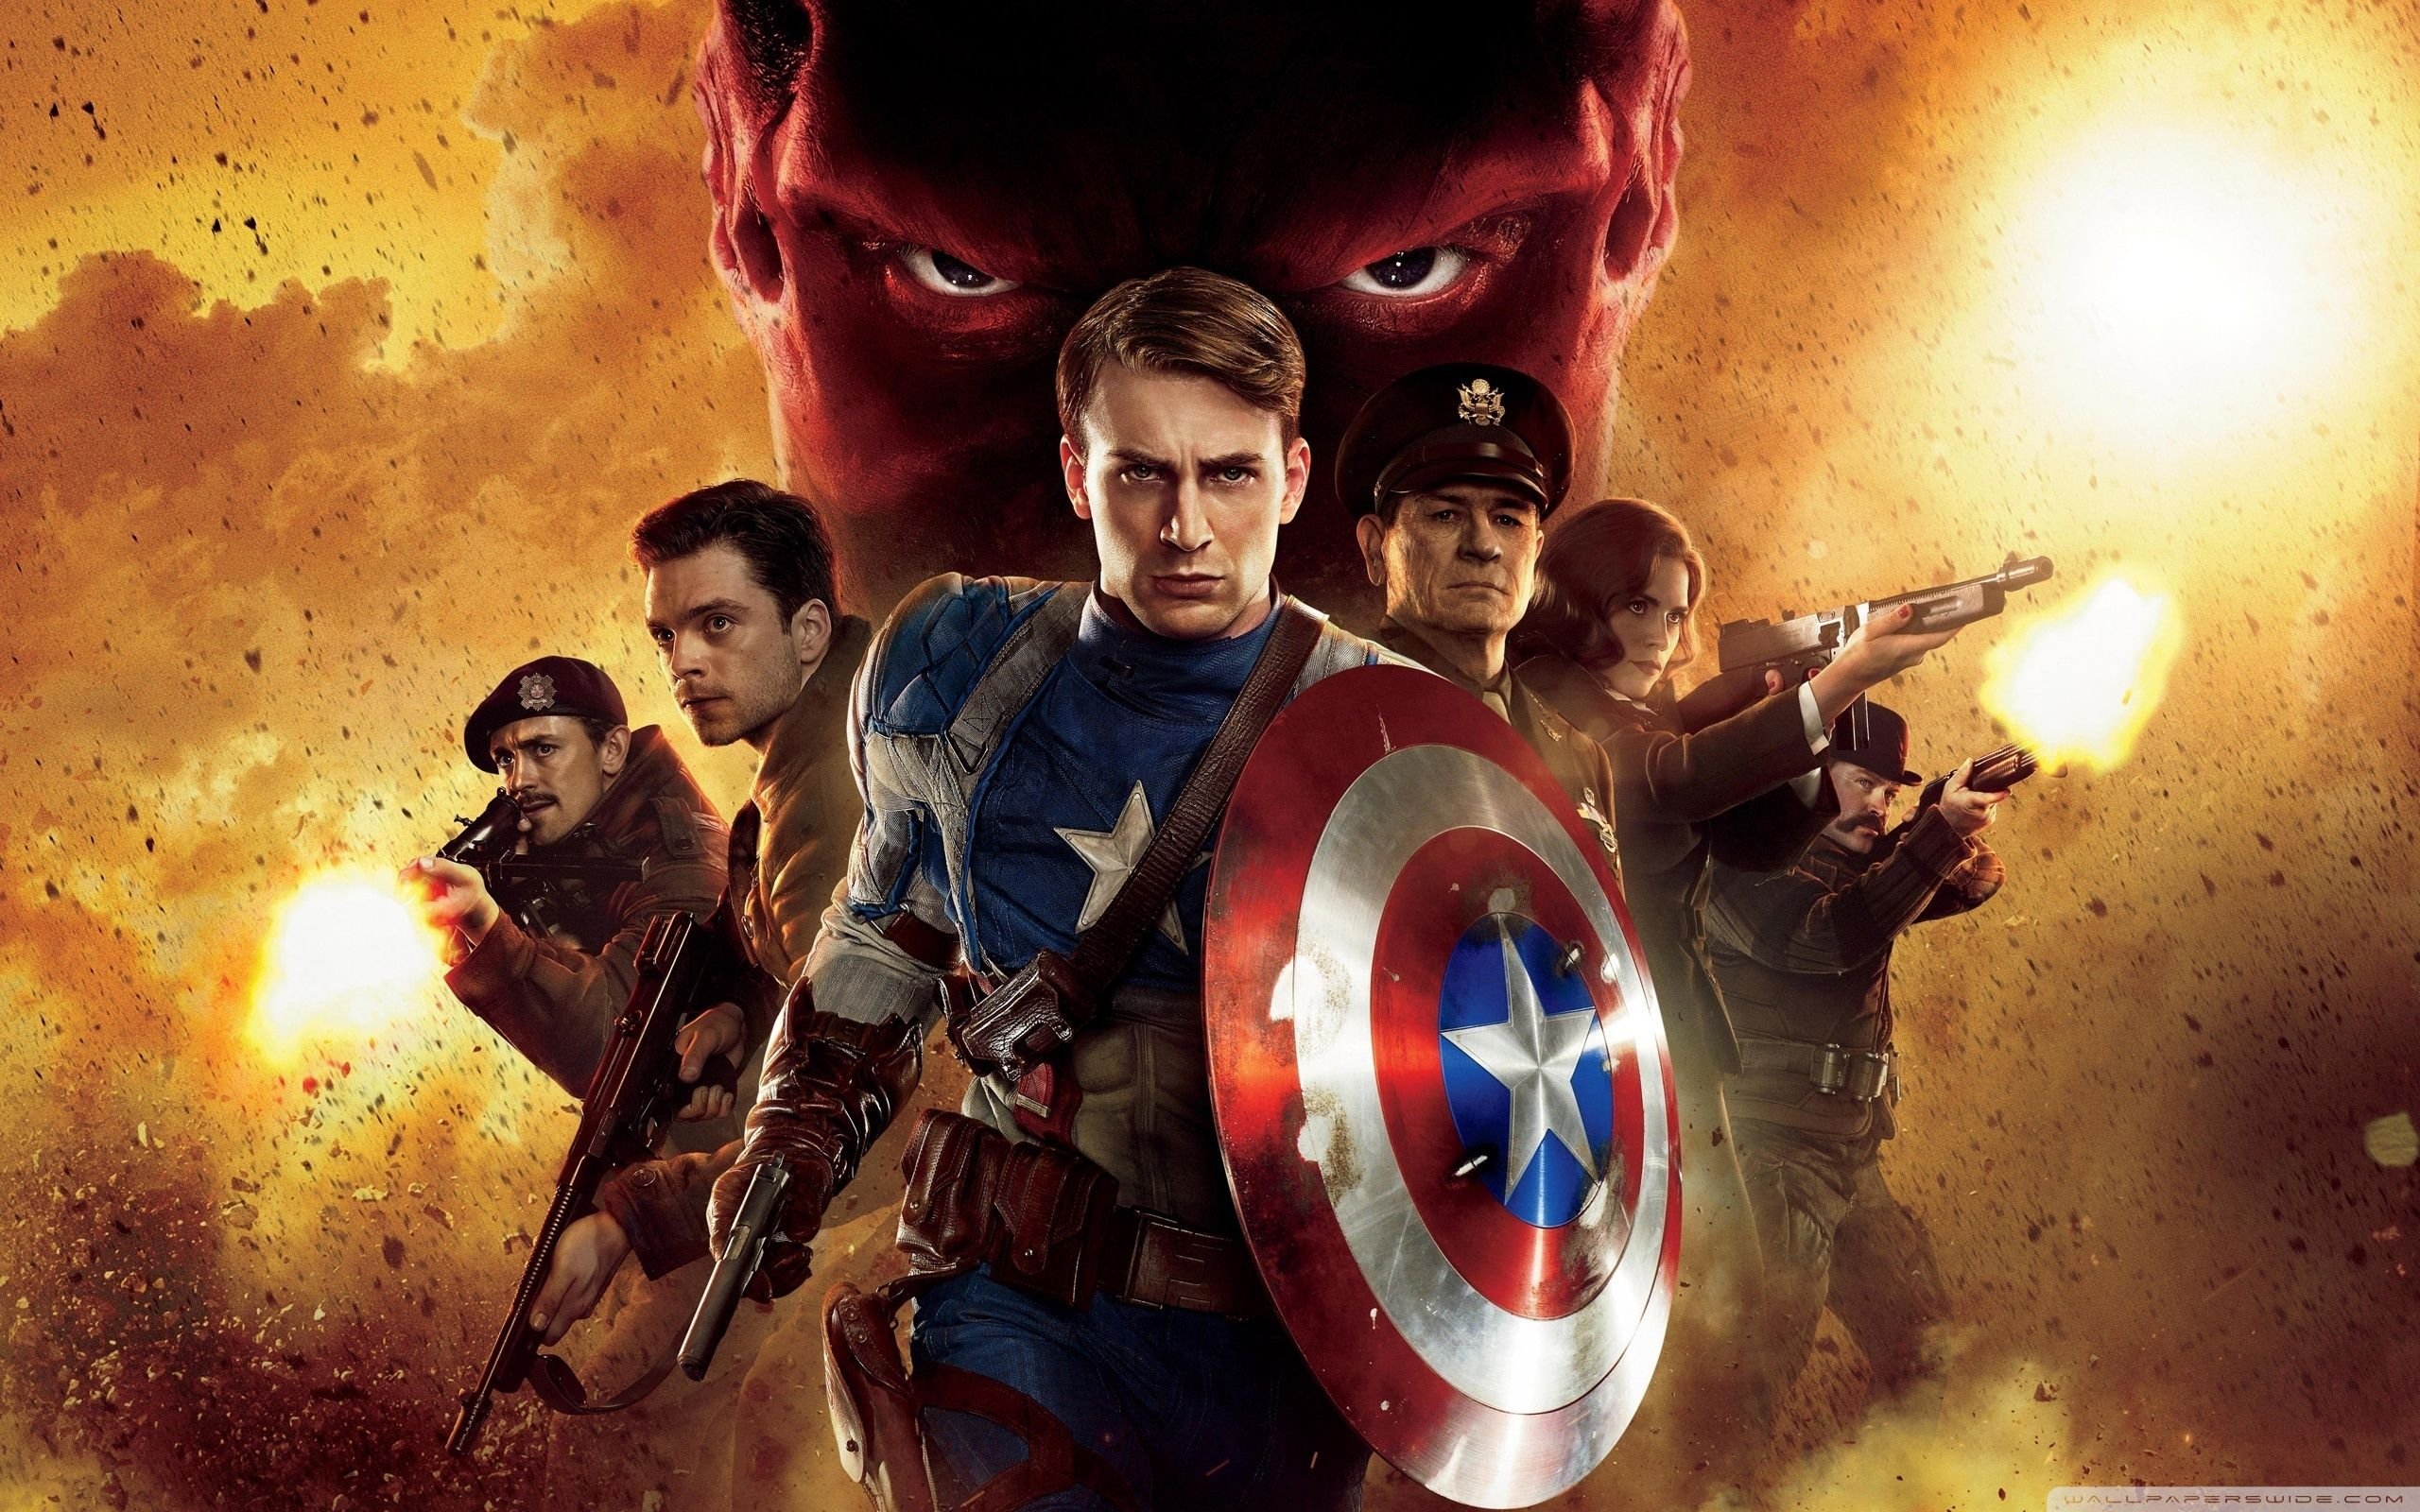 Captain America Movie Wallpapers Top Free Captain America Movie Backgrounds Wallpaperaccess